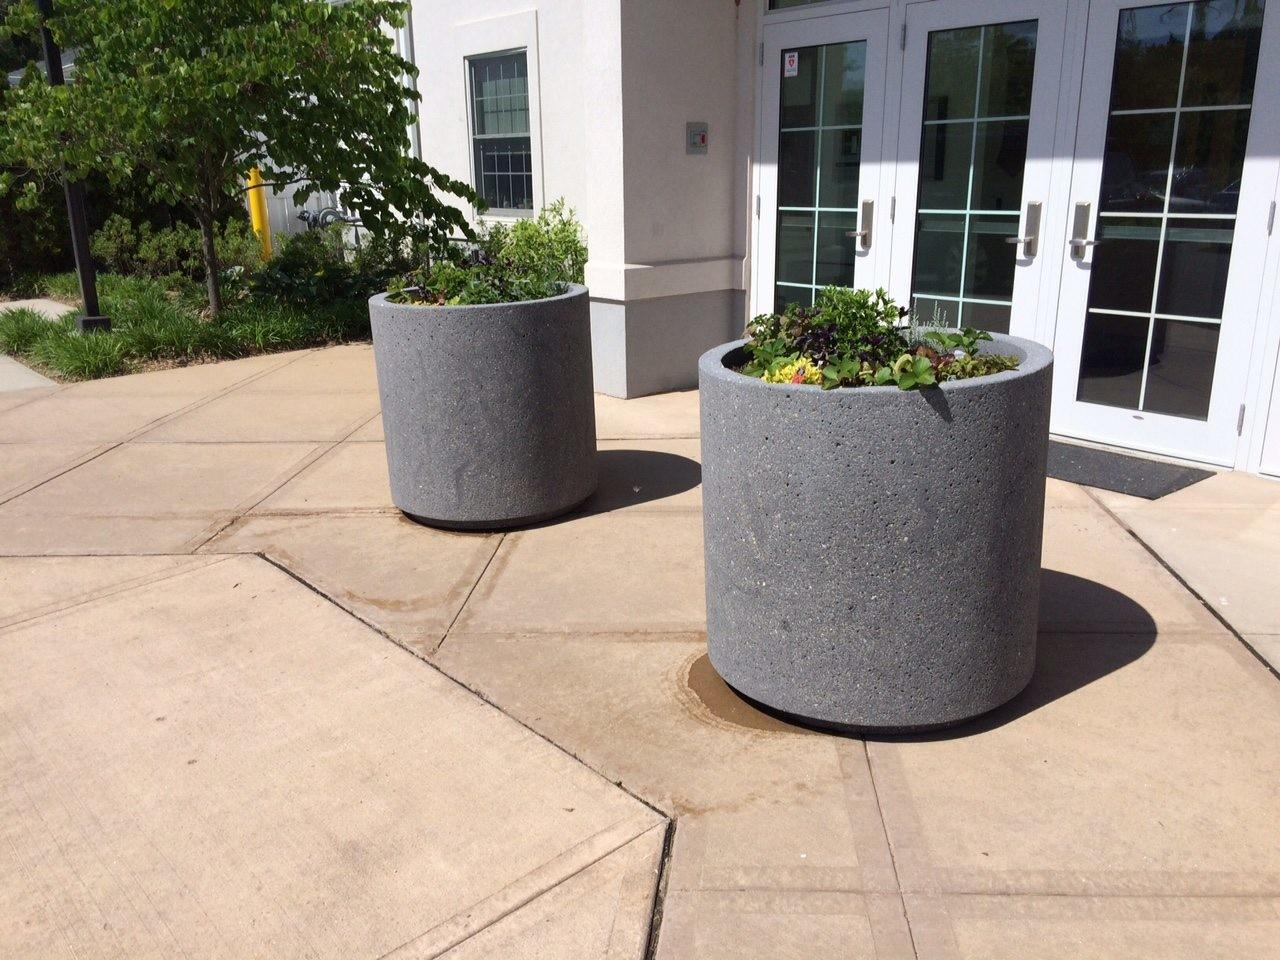 Top Planters Concrete Round Planter Toe